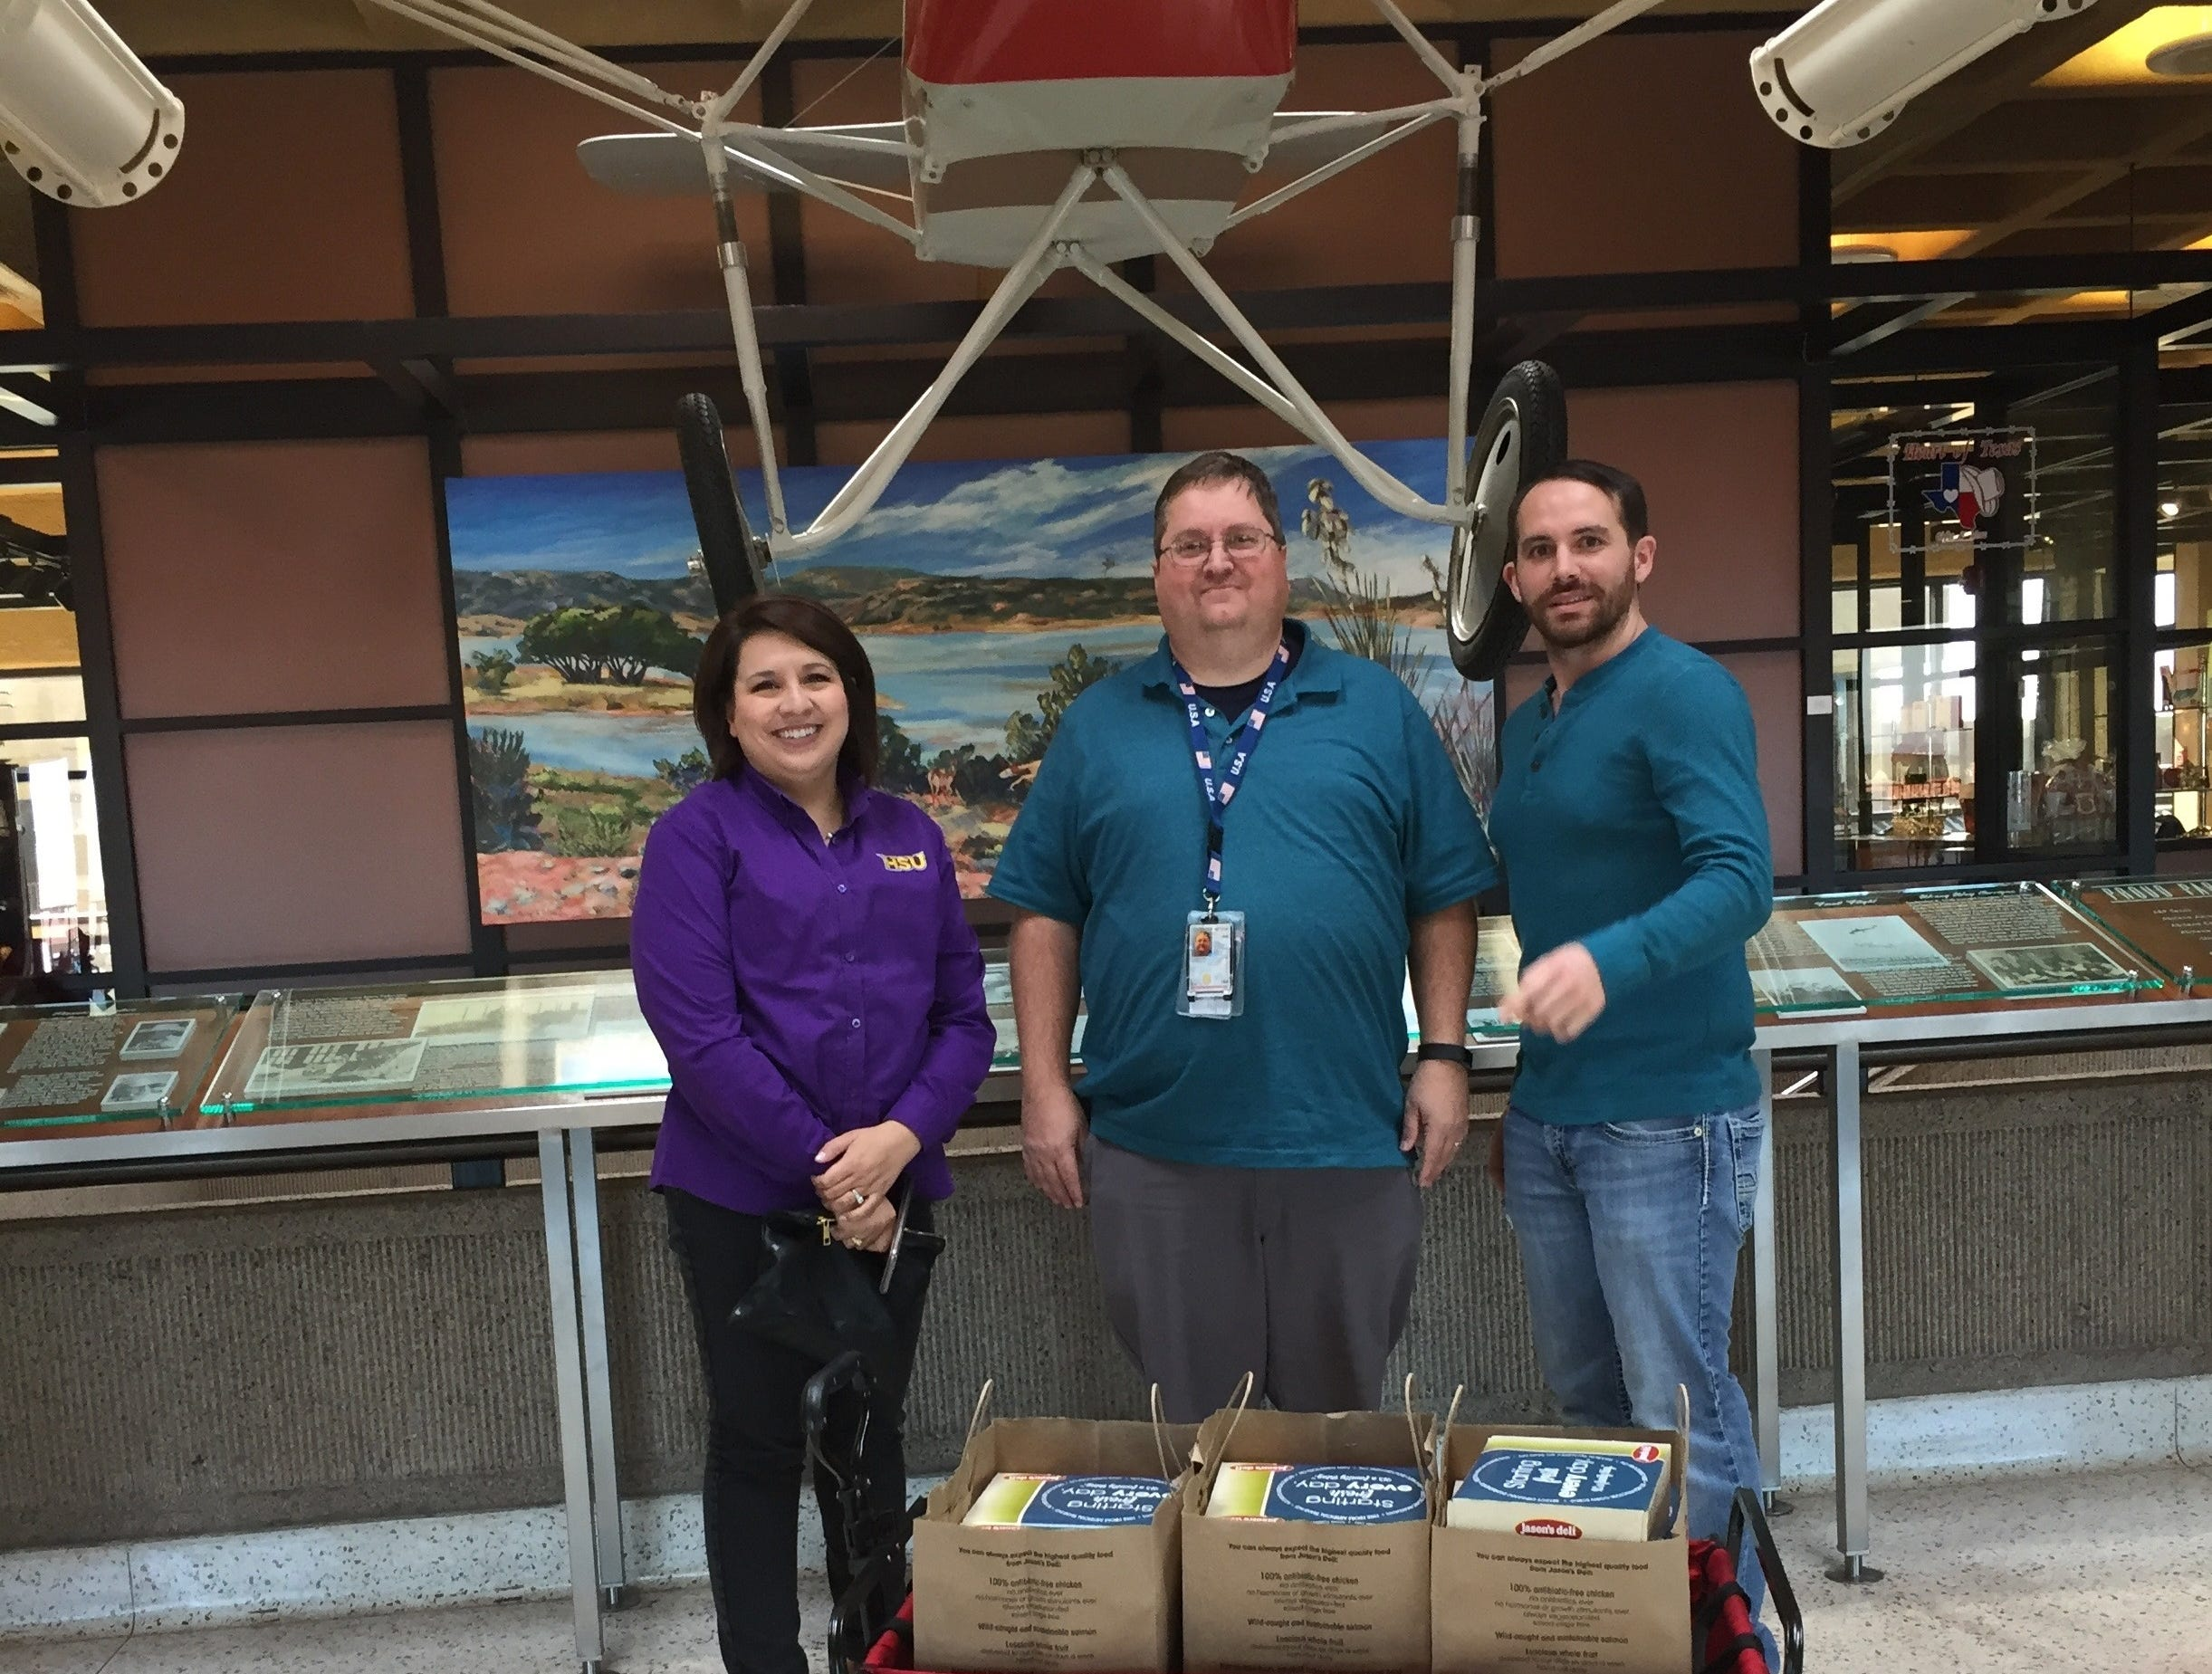 TSA manager Don Langford (center) receives lunches from Dr. Kristina Davis, Taylor County Democratic chairwoman, and Jake Lanehart for delivery to the TSA and air traffic controllers at Abilene Regional Airport during the government shutdown. The lunches were provided by the Taylor County Democratic Party and Big Country Democratic Women for unpaid essential Federal workers.